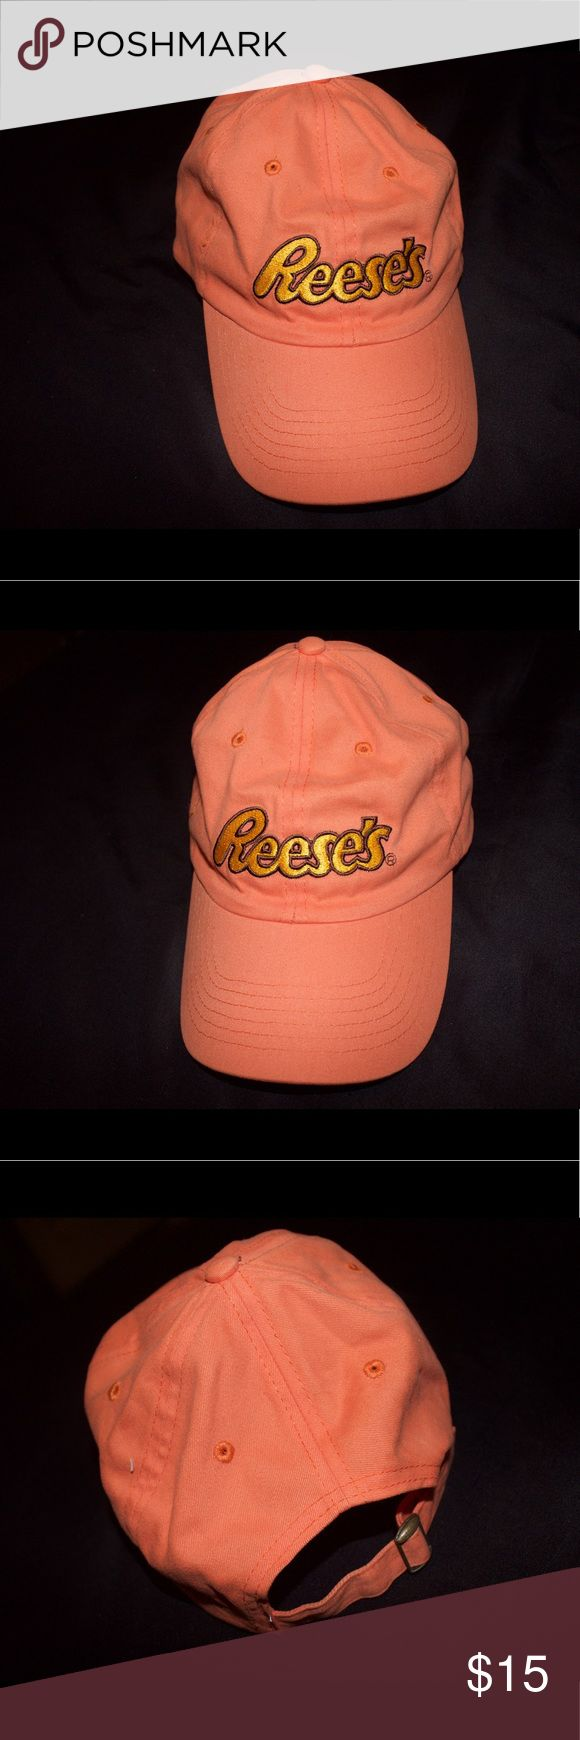 🍫🍫🍫Vintage Reese's Hat🍫🍫 No flaws.. comes from smoke free home Tags: Jordan Bape Nike Stussy Nmd Gucci Vintage Retro Trendy Tommy Hilfiger Polo Vlone Guess Kanye Yeezy Roc Air Max Adidas Supreme Cavs Lebron Curry king kyrie hershey Accessories Hats